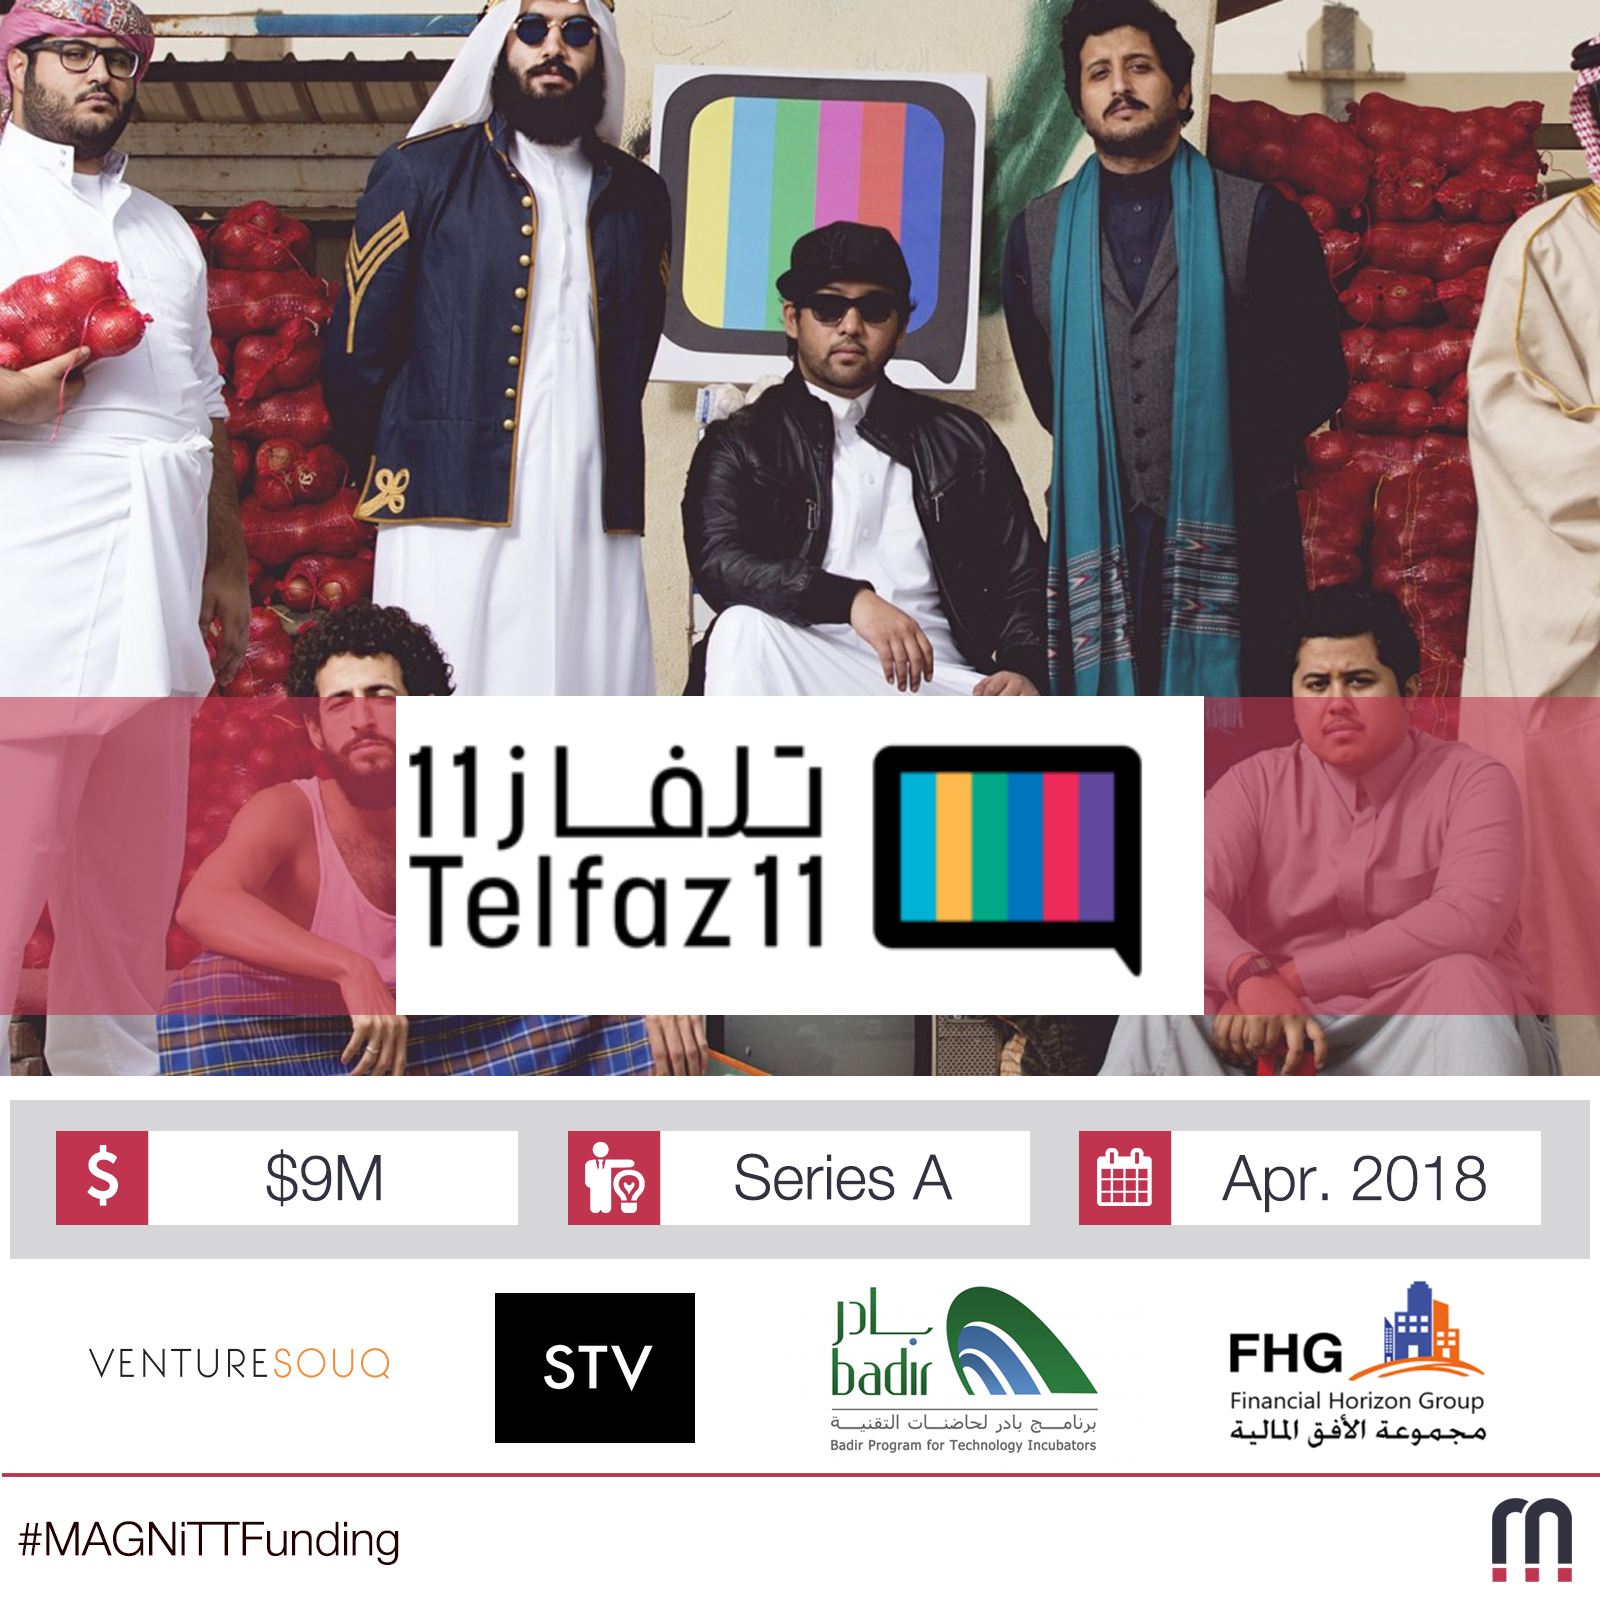 'STV' leads USD 9 million investment in Telfaz11 in Series A funding